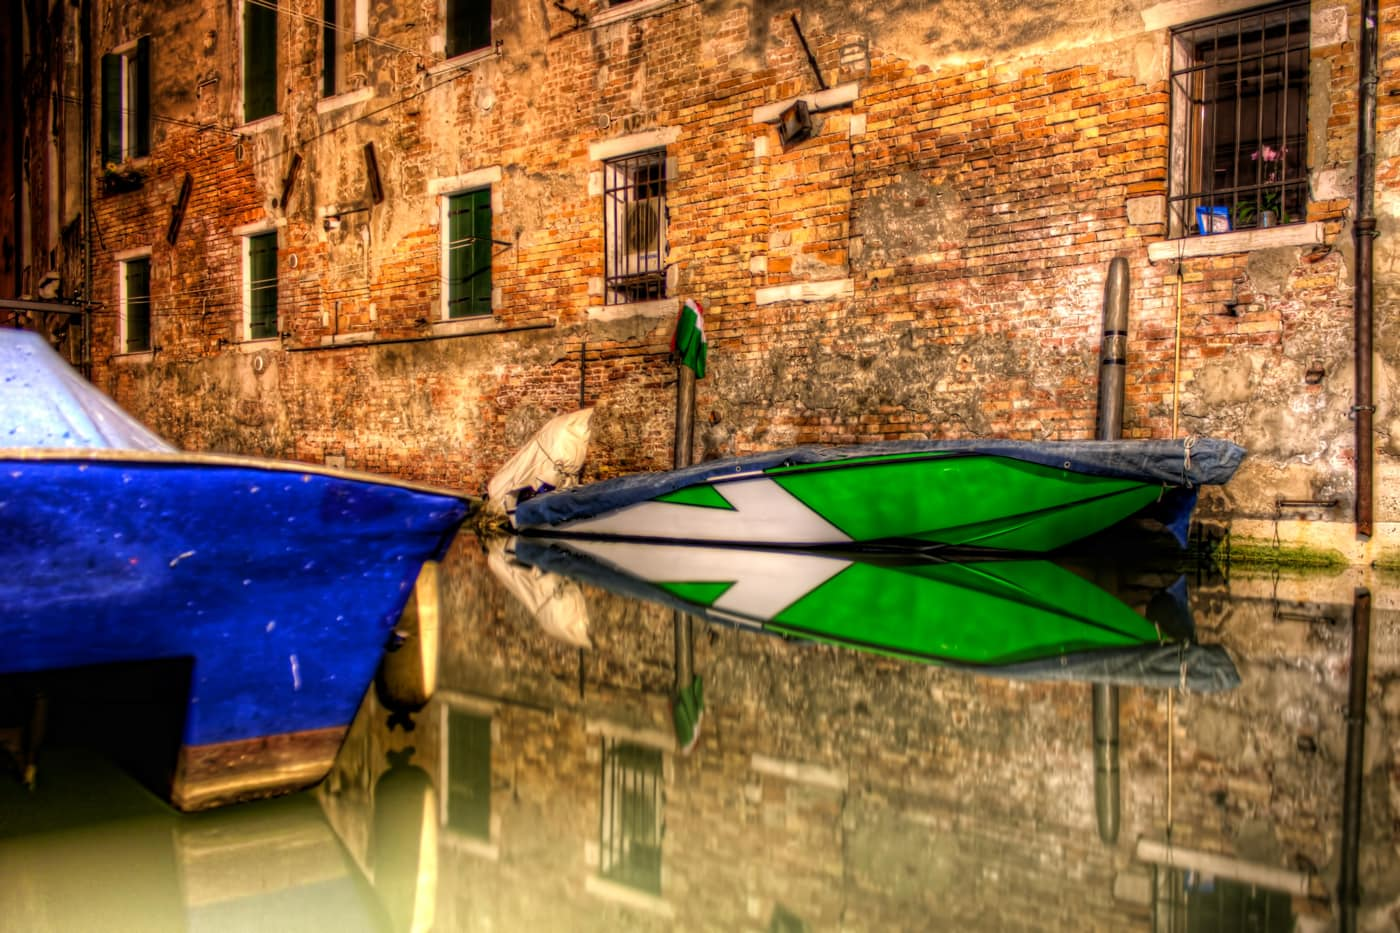 Speed Boat at night in the Venetian Ghetto in Venice, Italy.